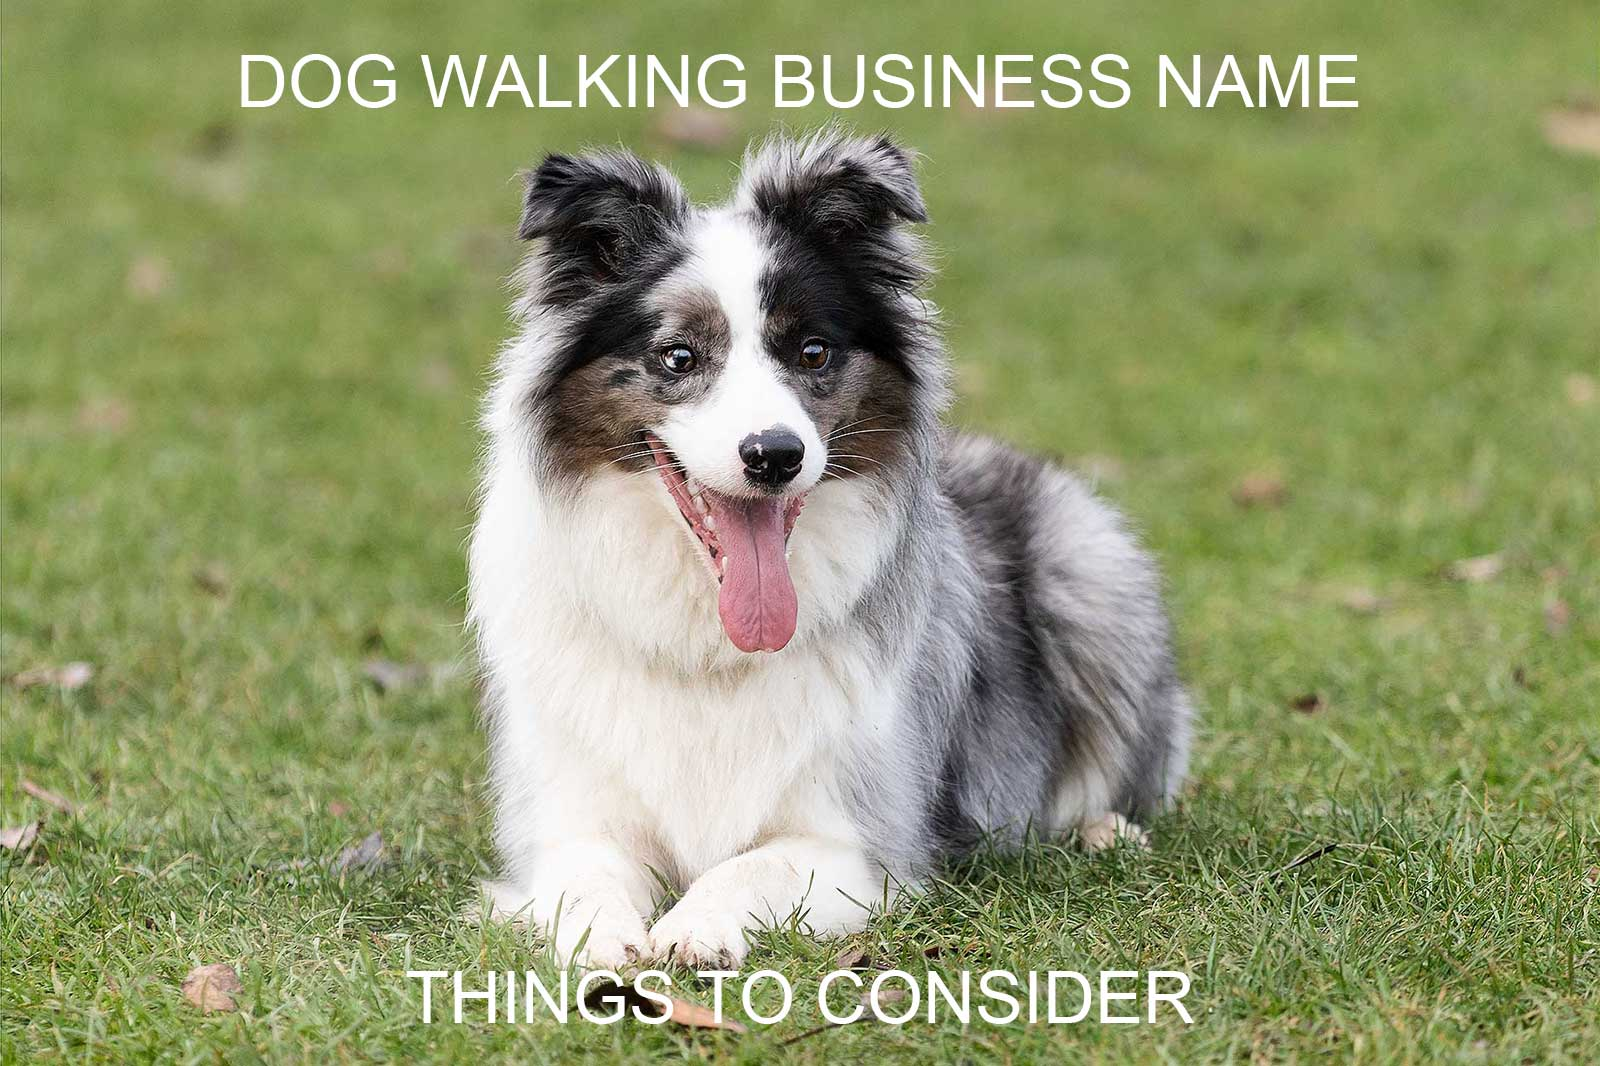 Dog Walking Business Name Article